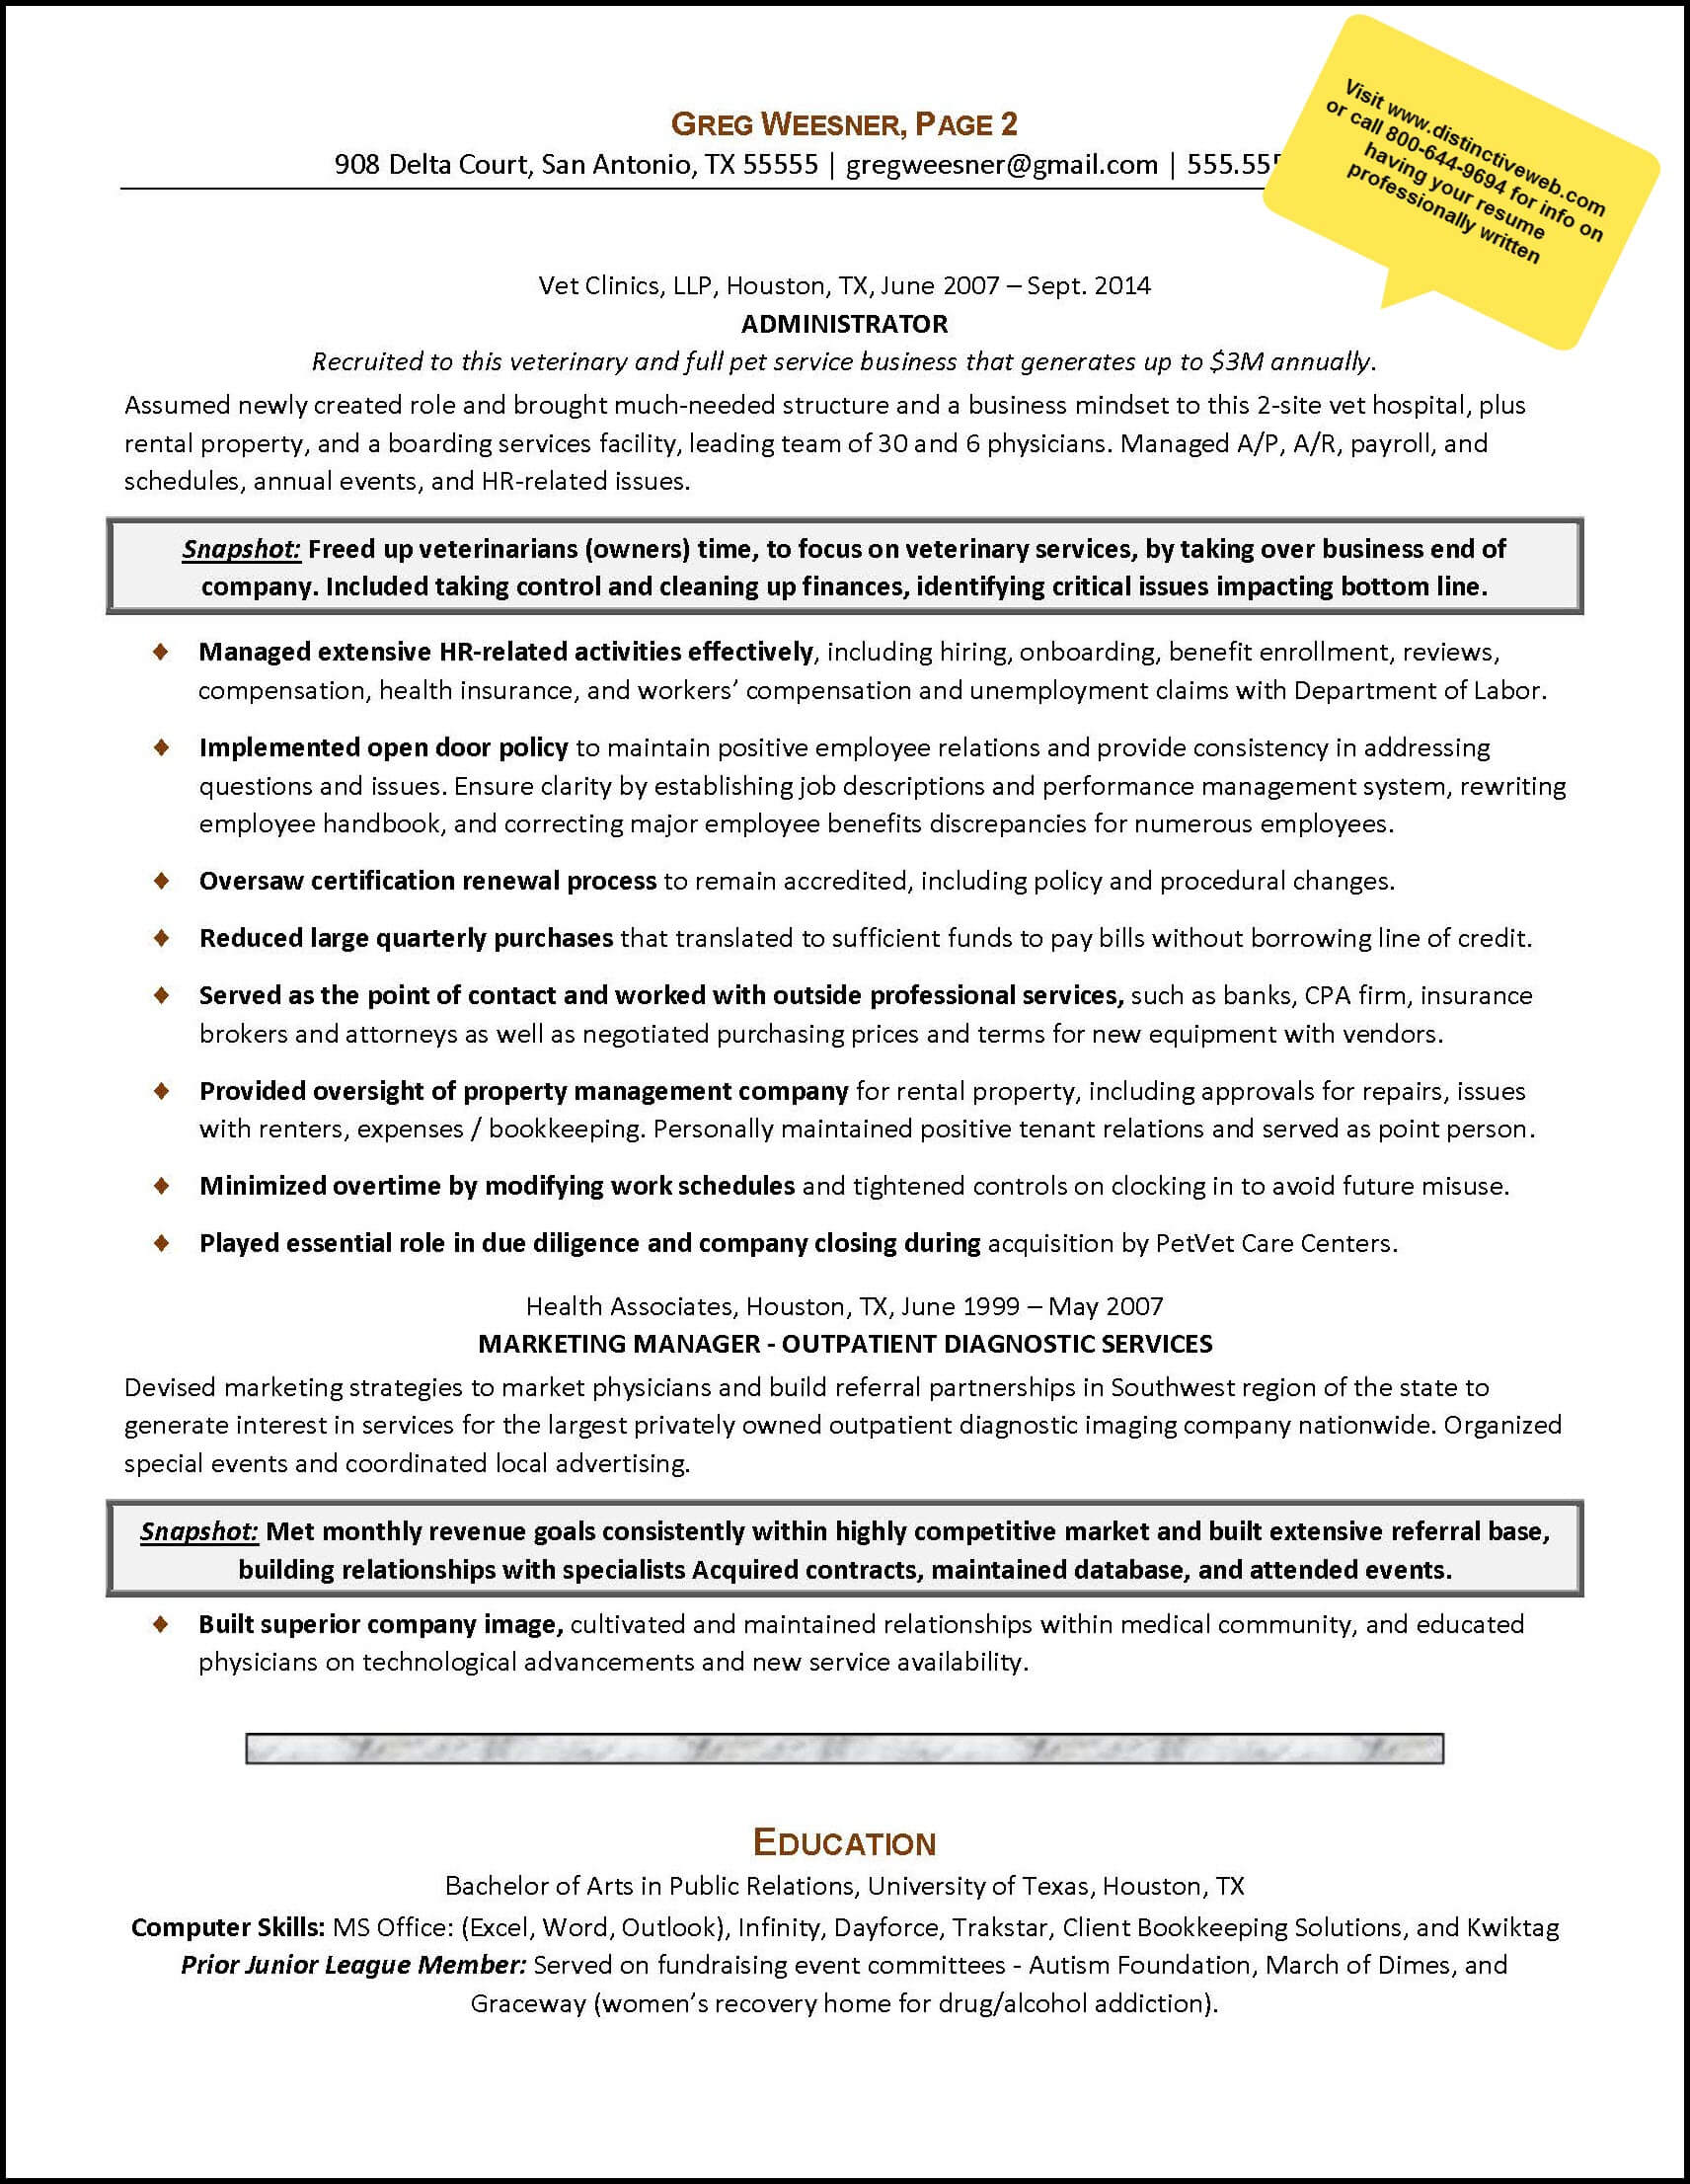 Beau Sample Career Change Resume For An Administrative Services Manager   Page 2